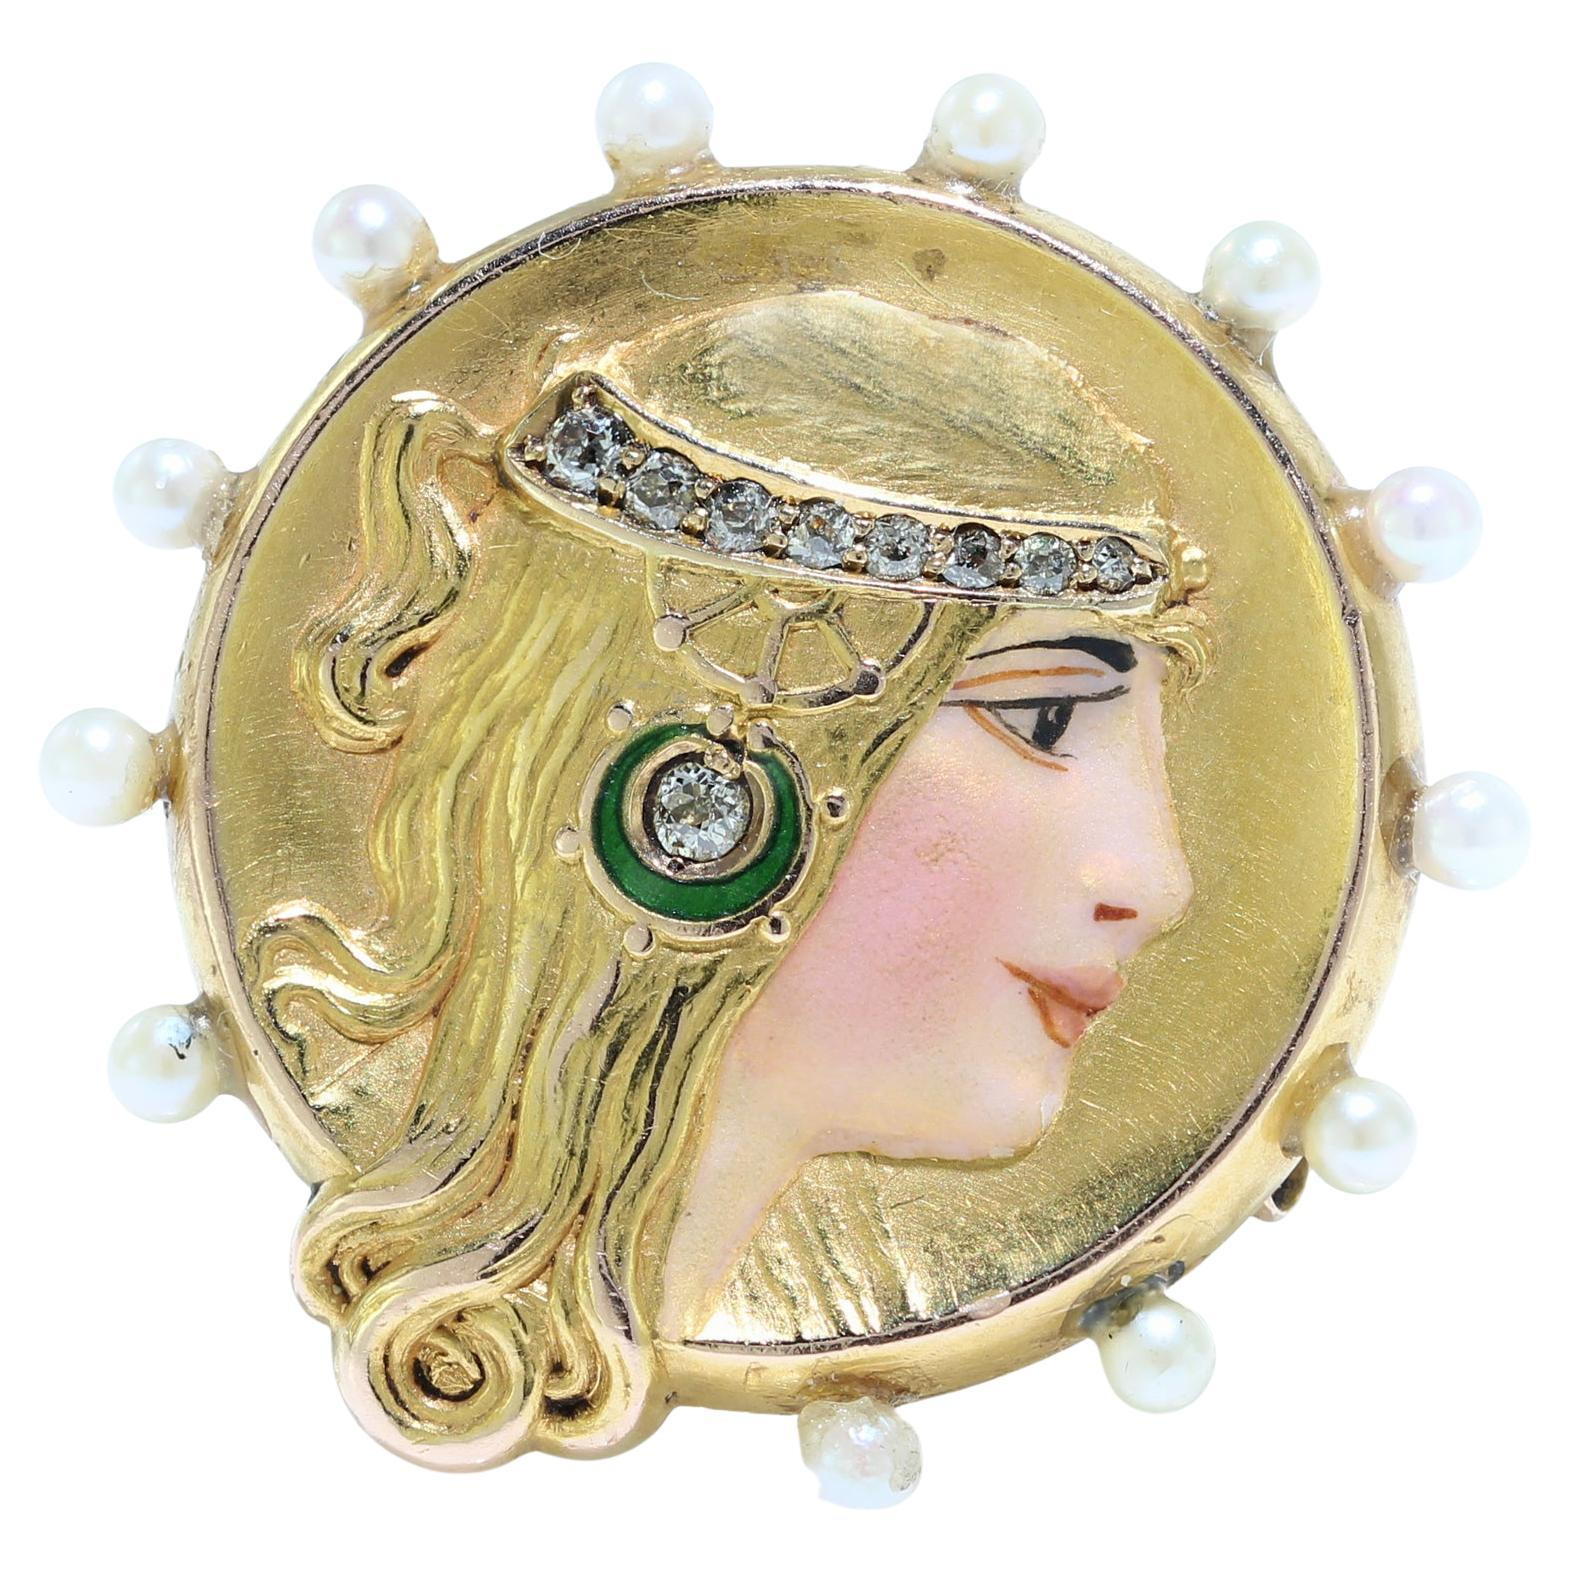 Art Nouveau 18kt Gold Brooch and Pendant with Enamel Lady Decoration, 1910